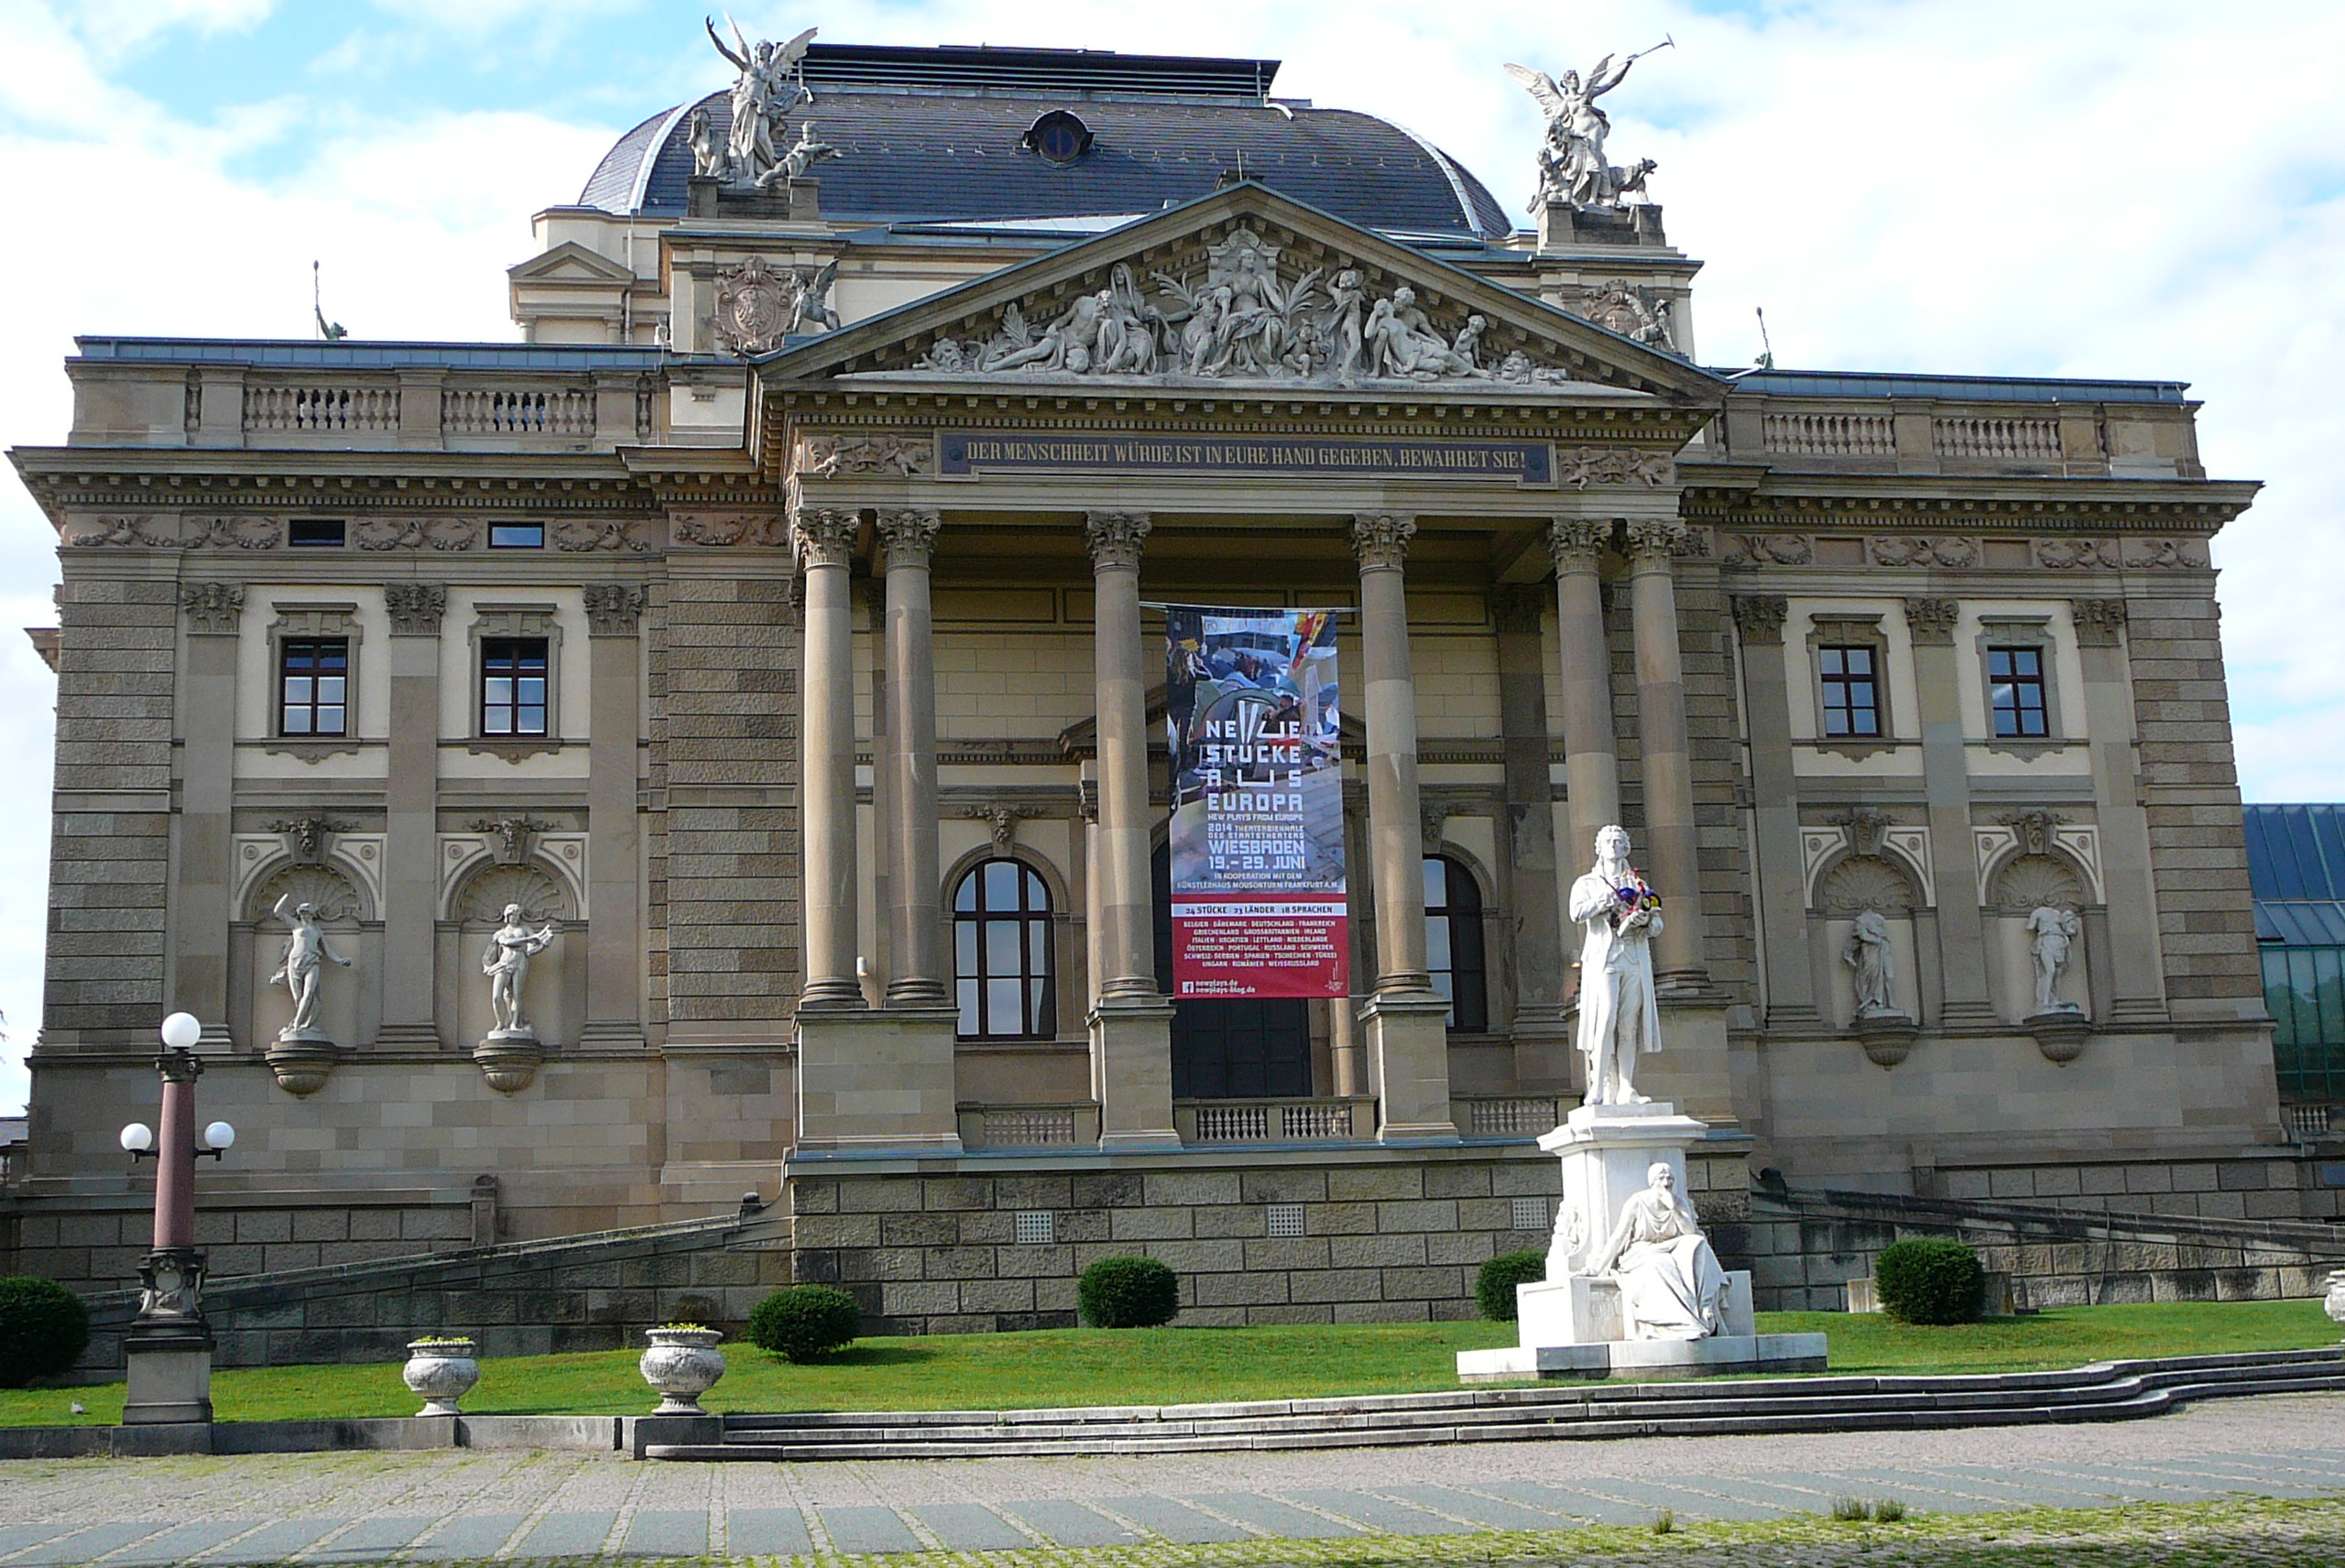 Wellness In Wiesbaden Wiesbaden Why I Like It And Why Rick Steves Should Reconsider